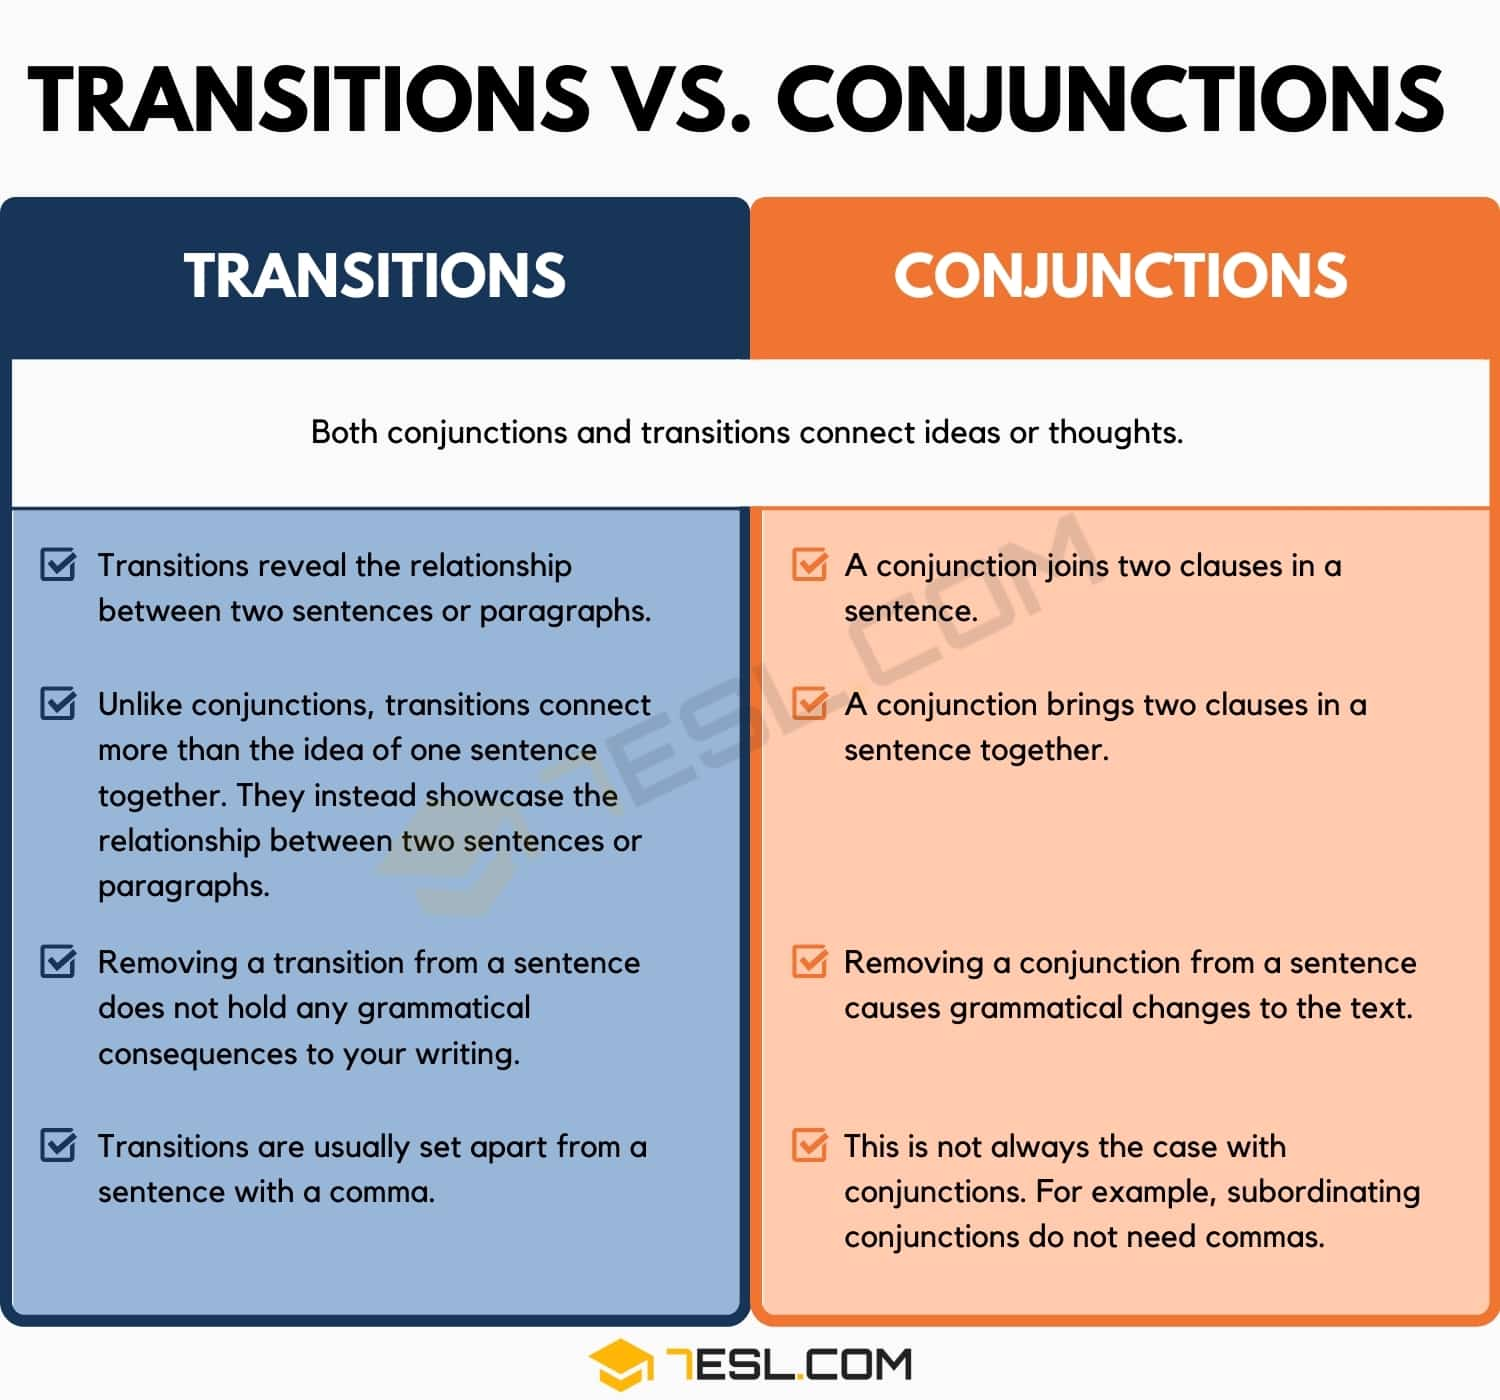 Transitions vs. Conjunctions